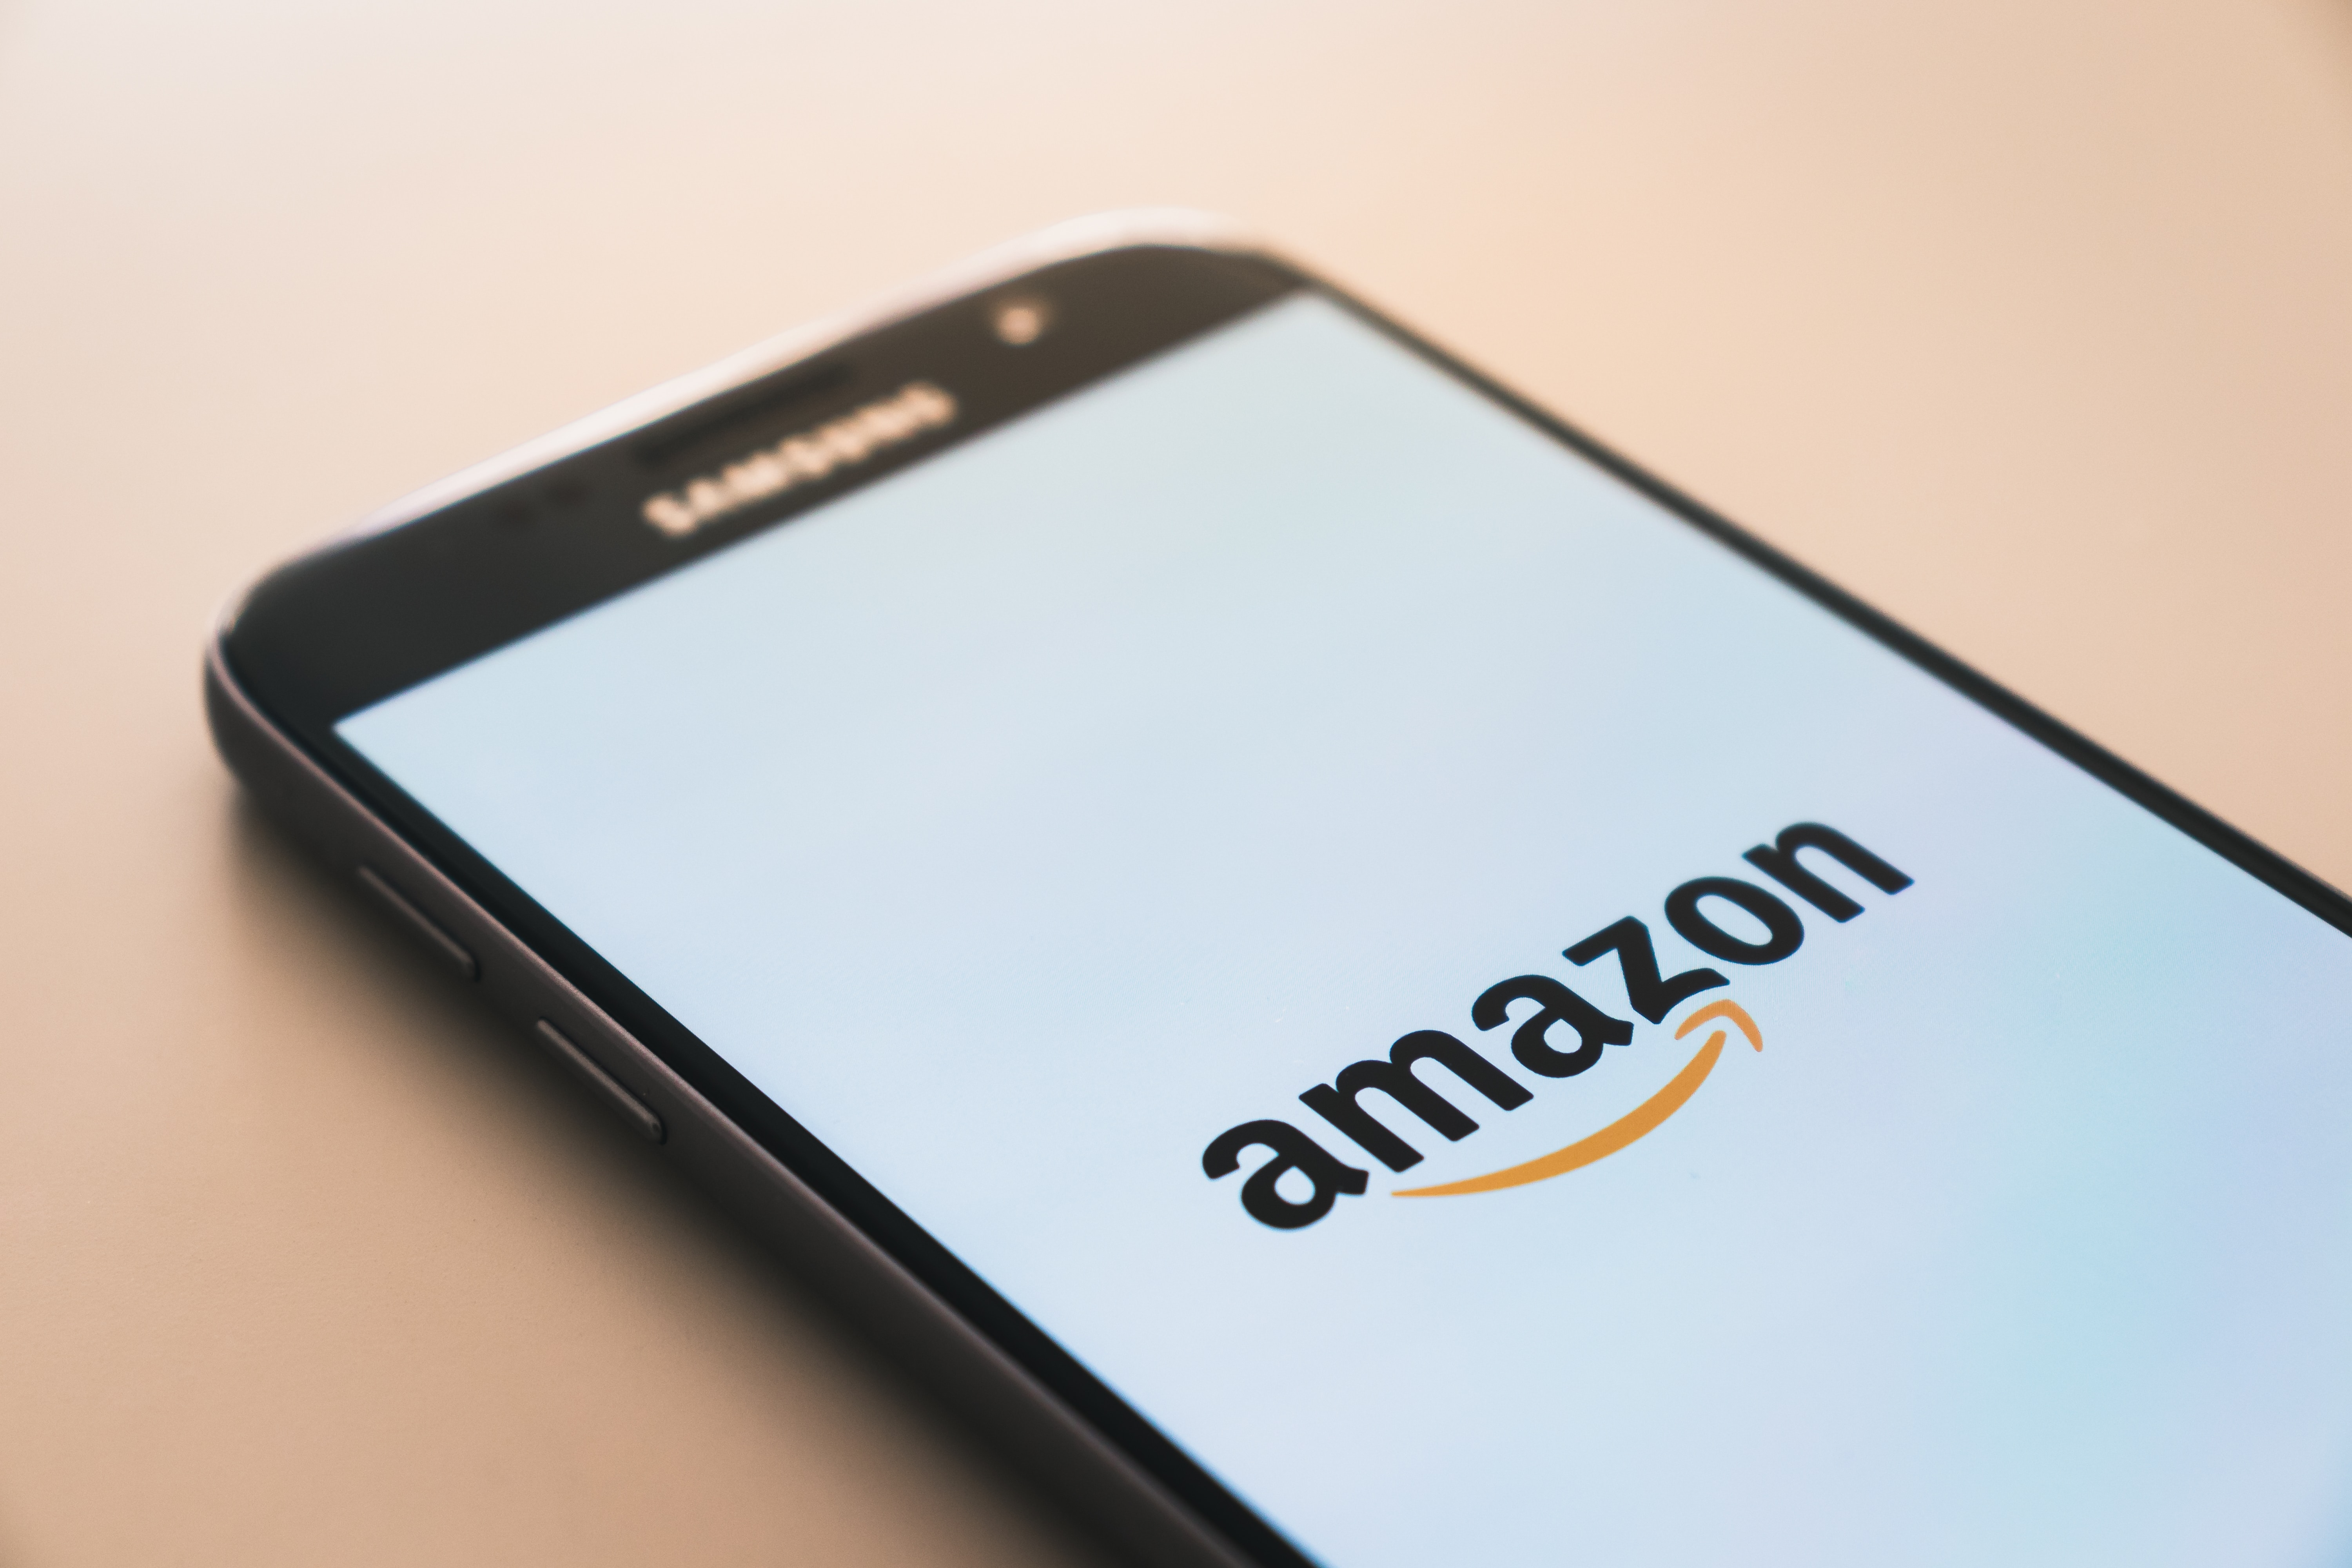 Smartphone with amazon logo